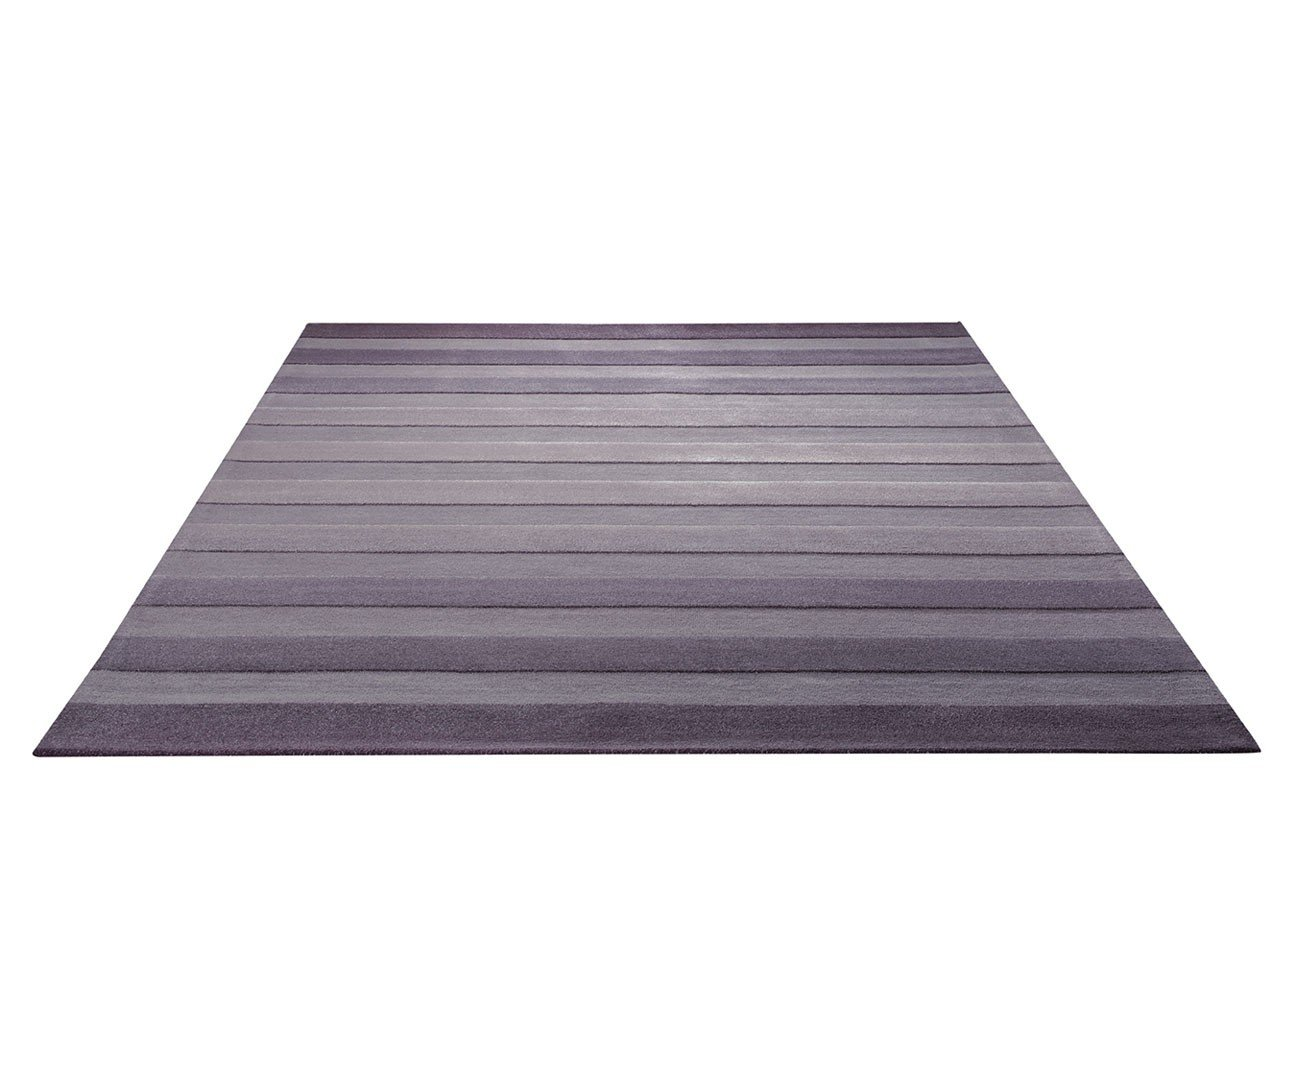 Tapis salon gris violet - dry wired